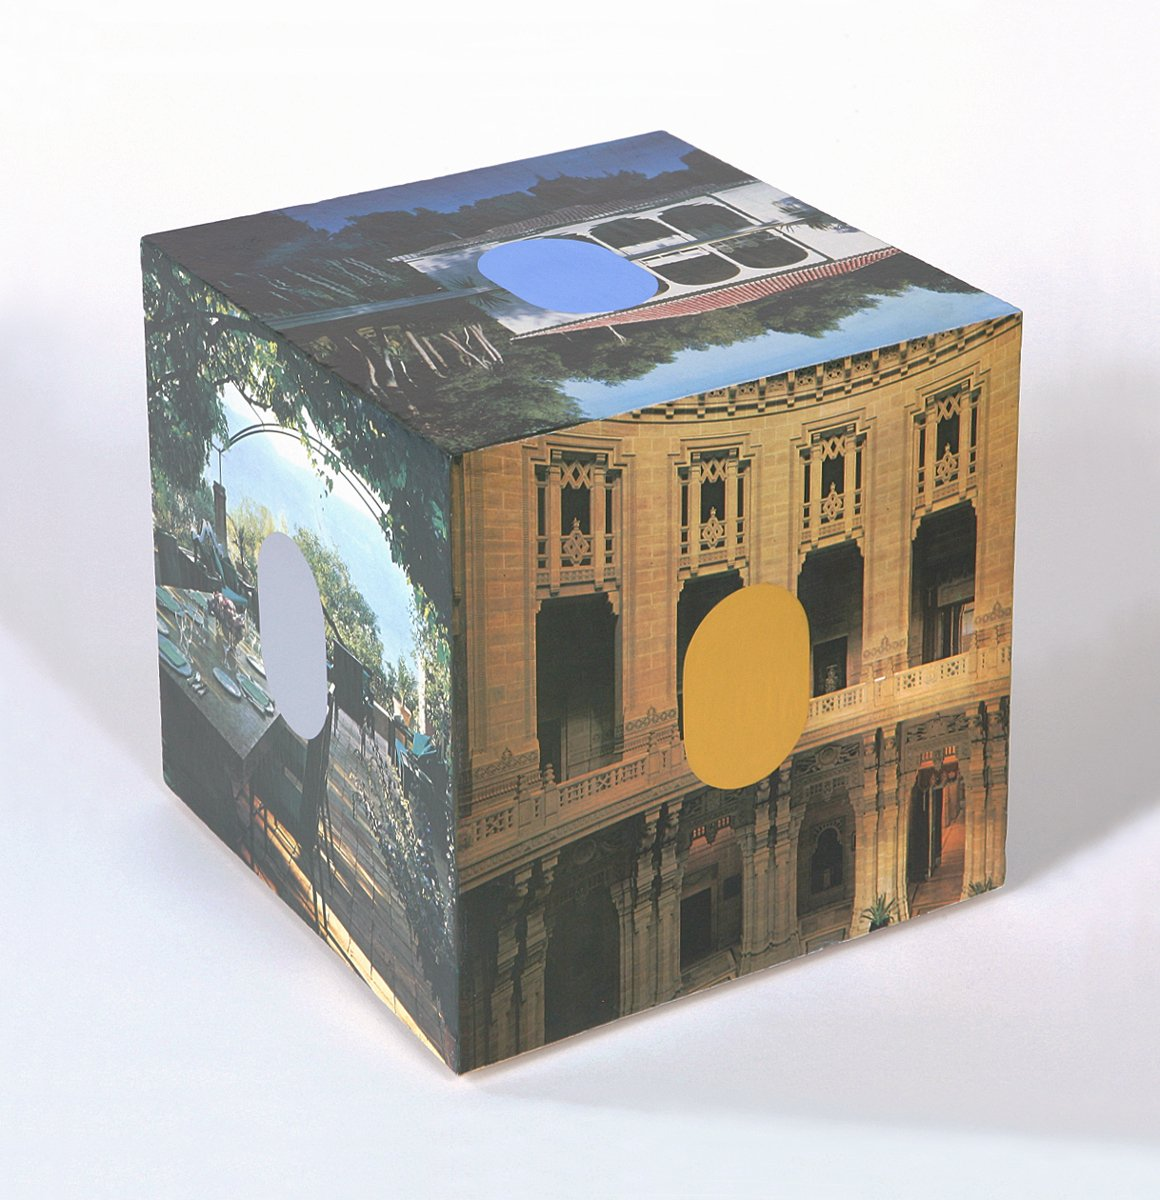 A cube with architectural images and blue, grey and ochre ovals on the outside.